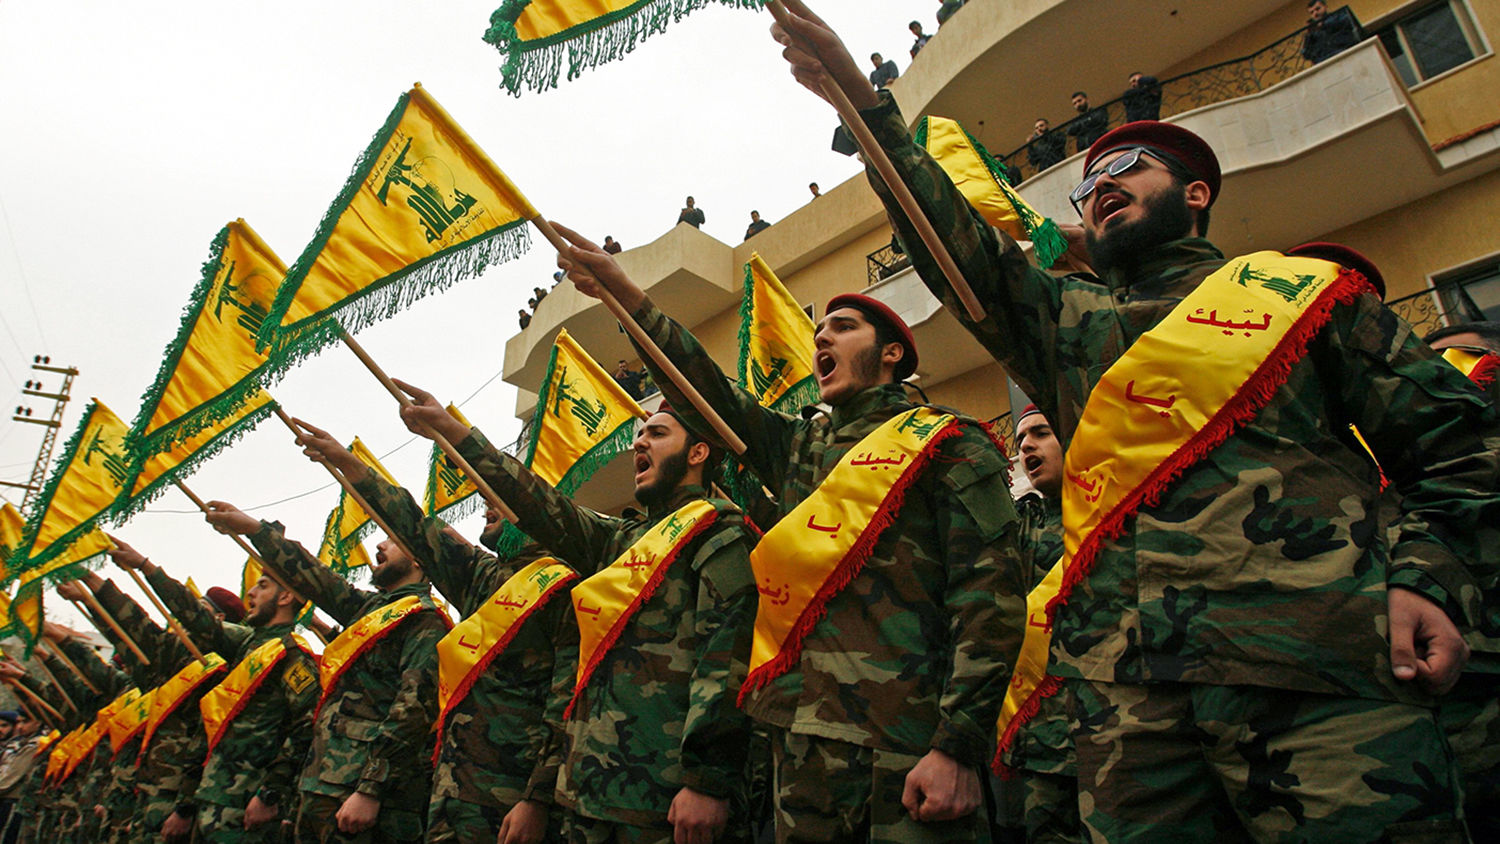 American Jewish Congress Applauds Germany for Banning Hezbollah